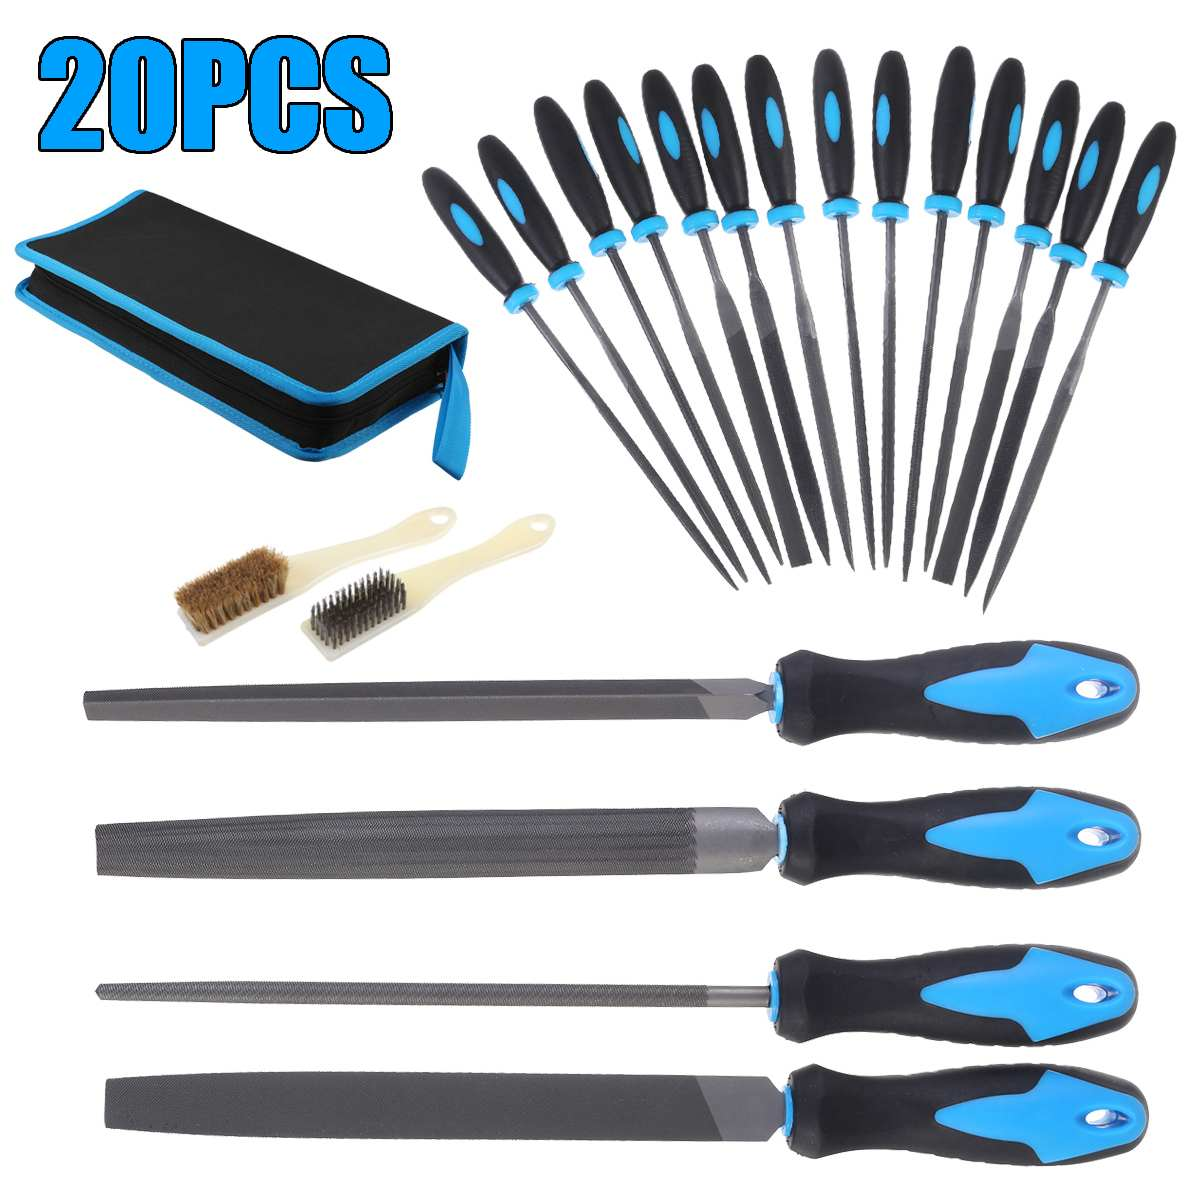 16X T12 Engineers Hand//Needle File Tool Set Carrying Case for Woodwork